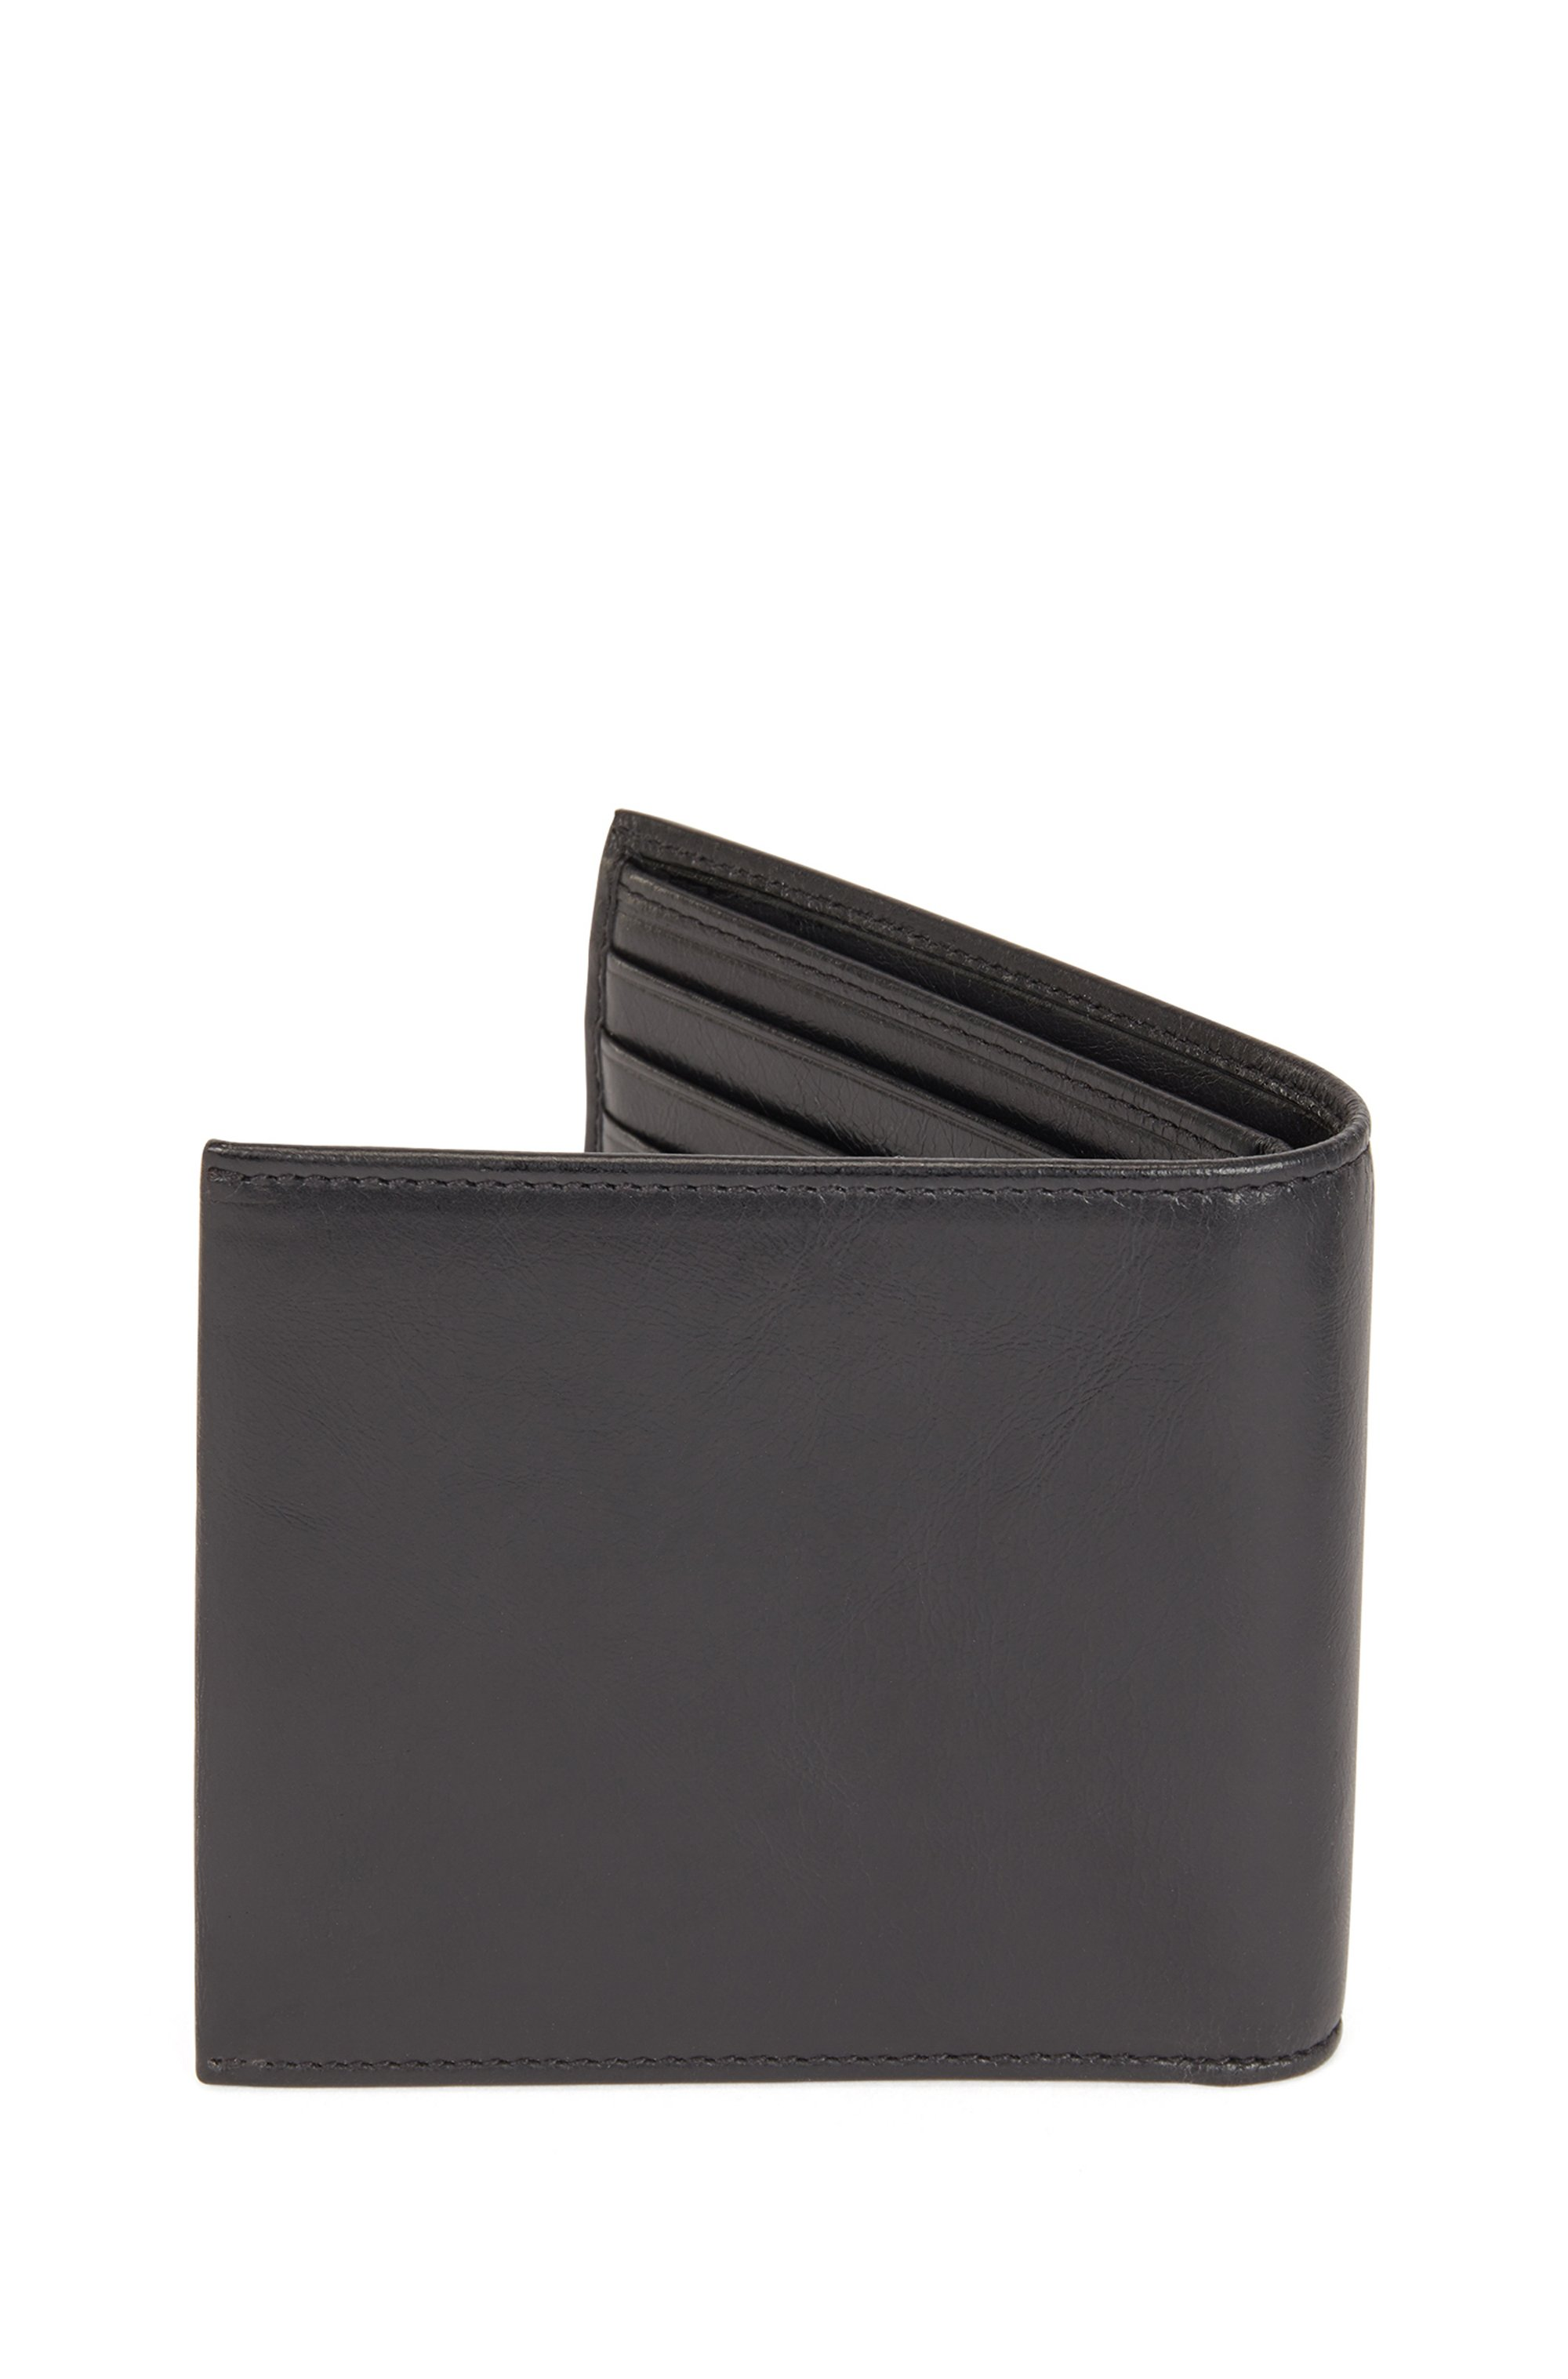 Matte Italian-leather billfold wallet with eight card slots